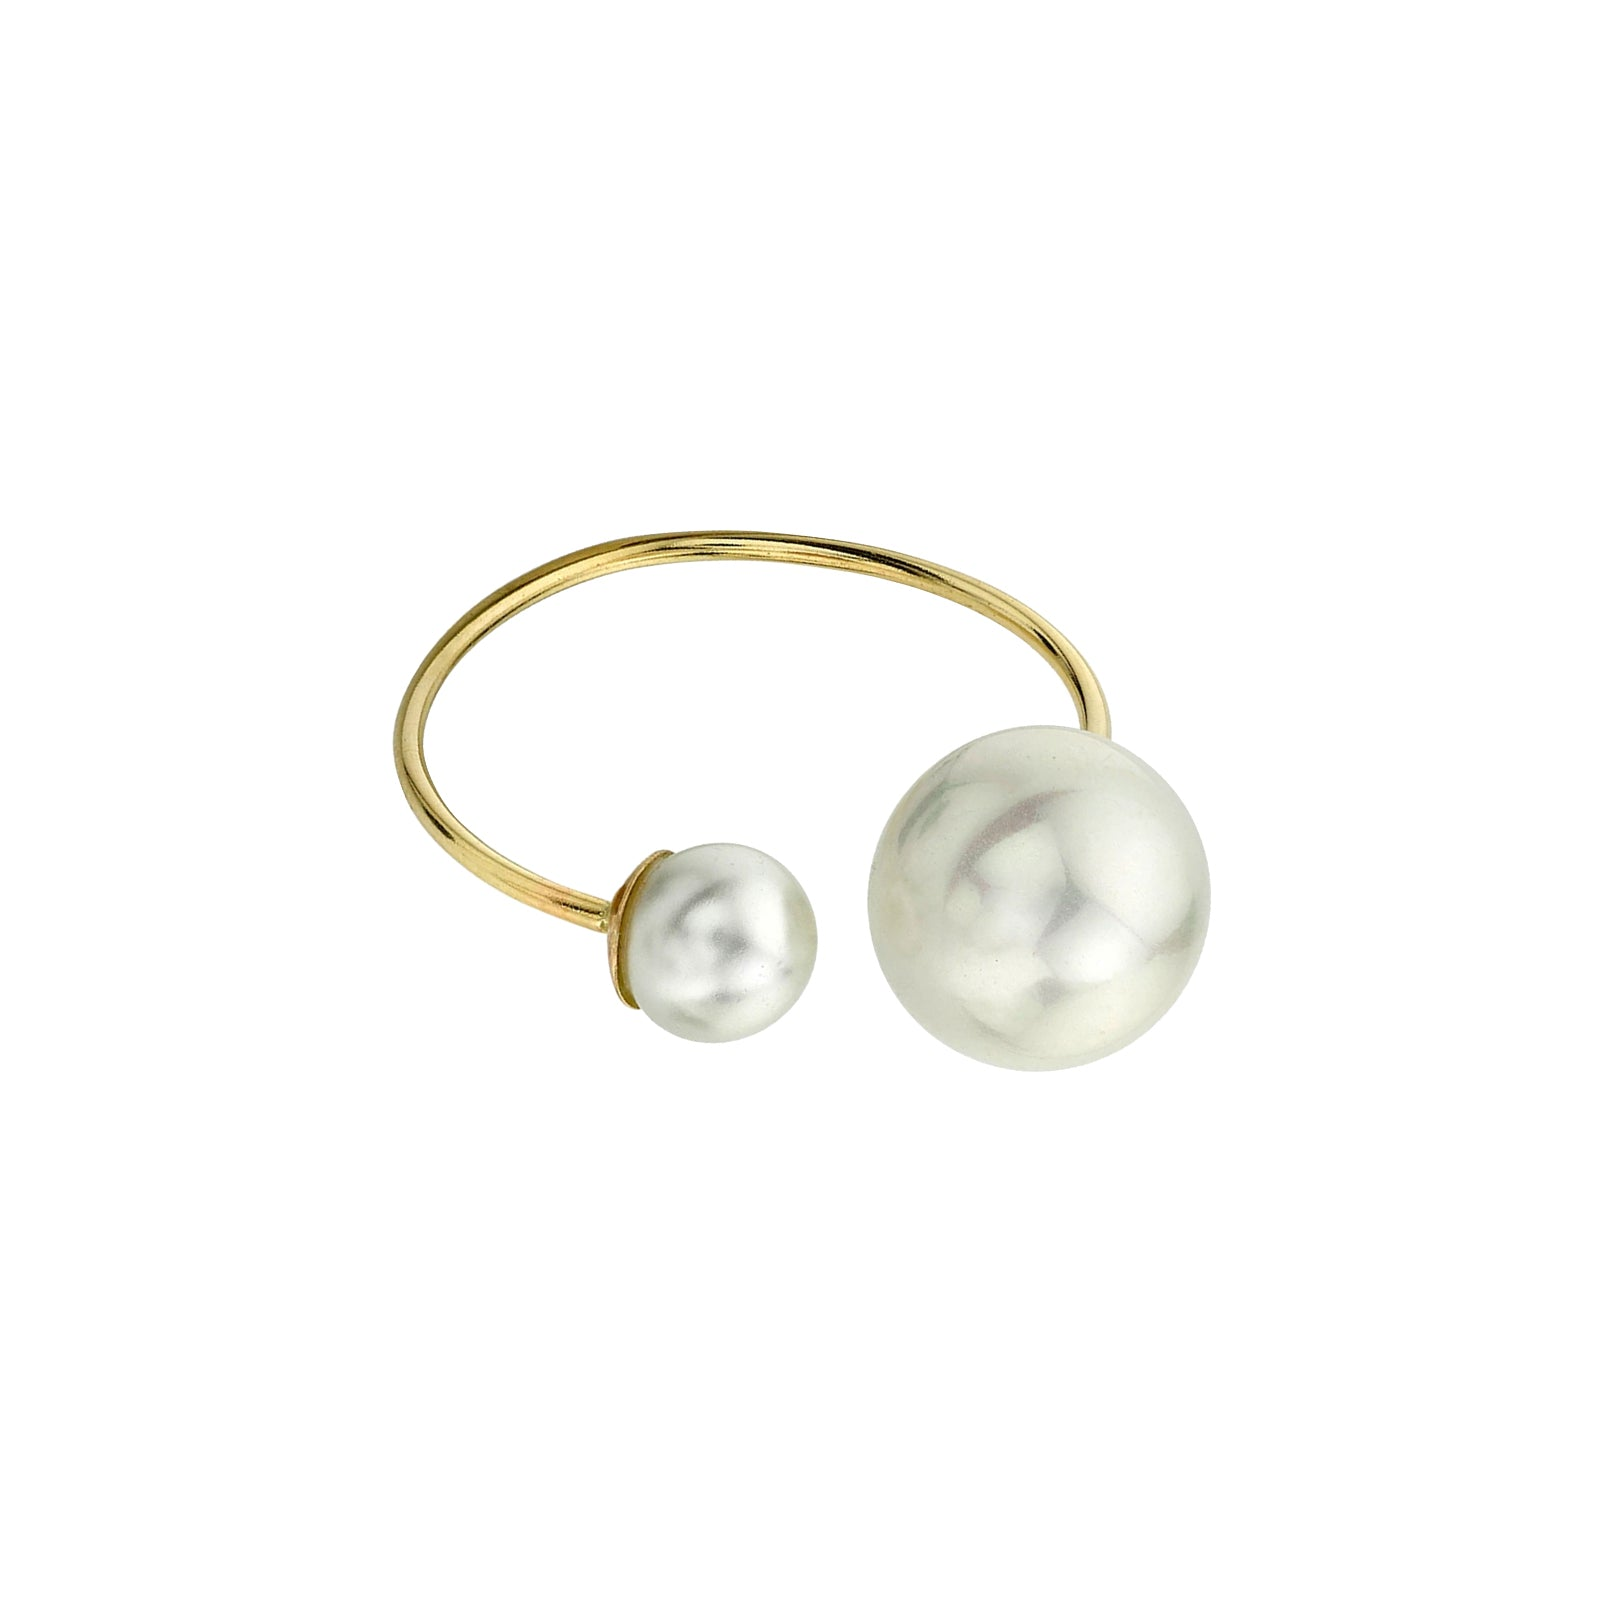 Gabriela Artigas & Company Asymmetrical Suspended Pearl Ring - Yellow Gold - Rings - Broken English Jewelry